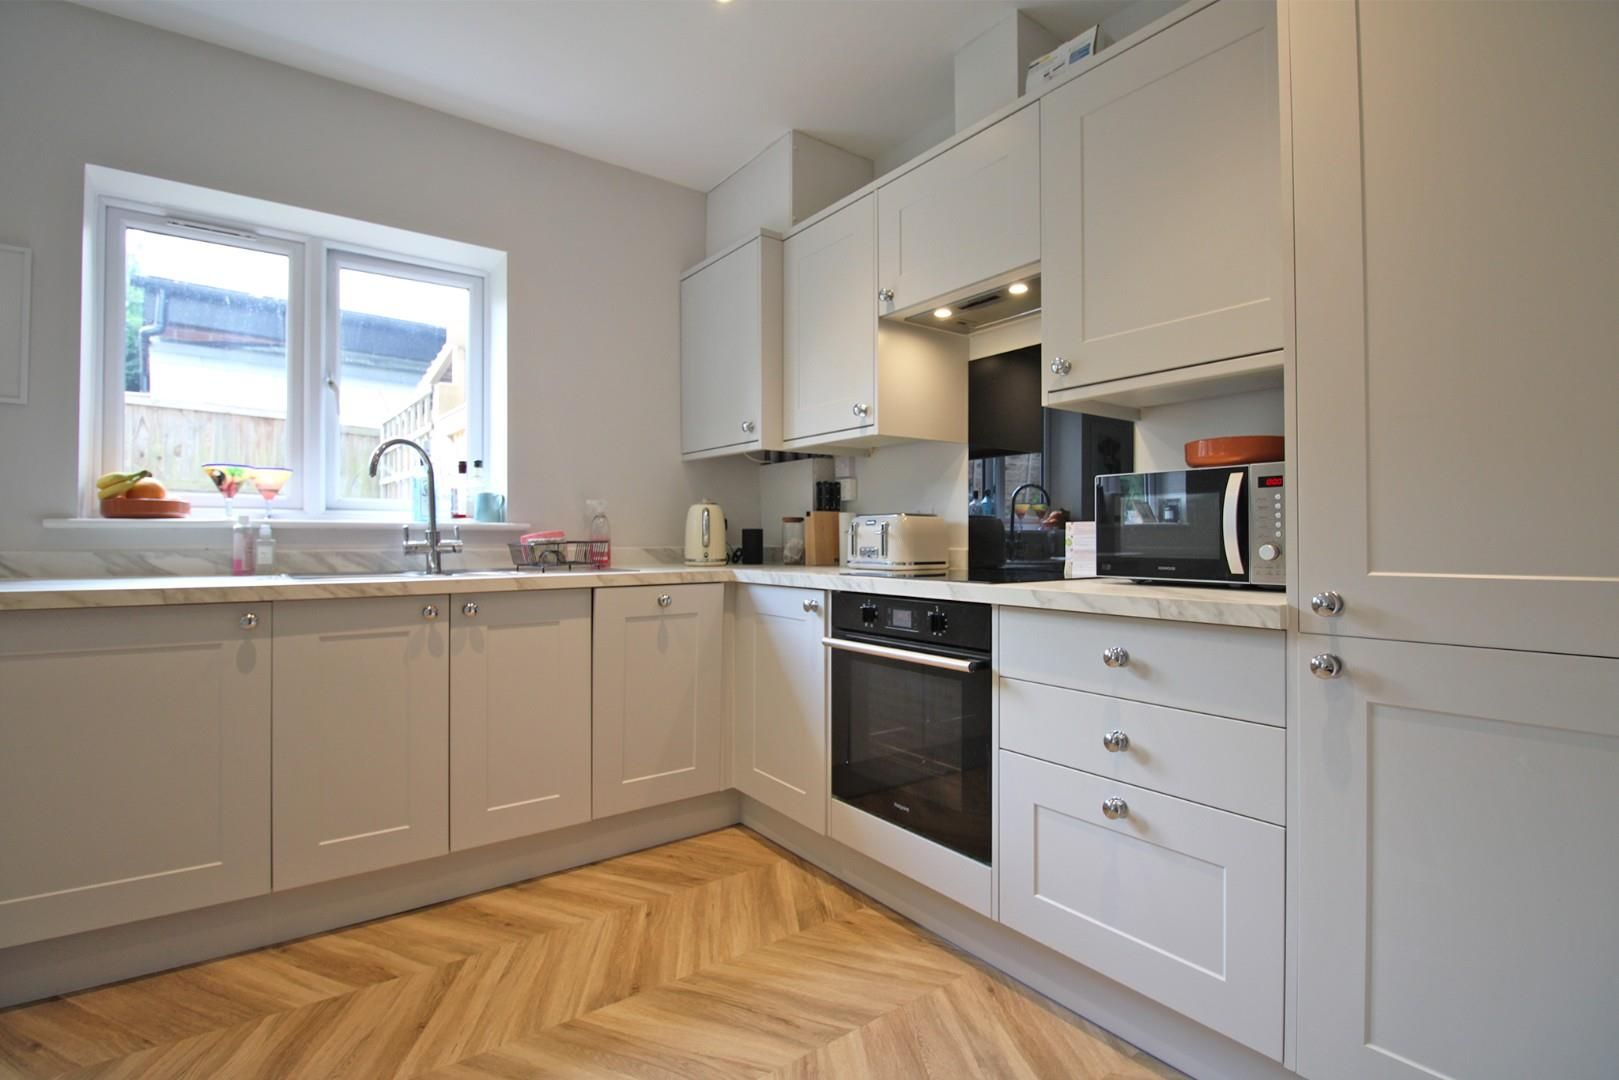 2 bed apartment to rent 3